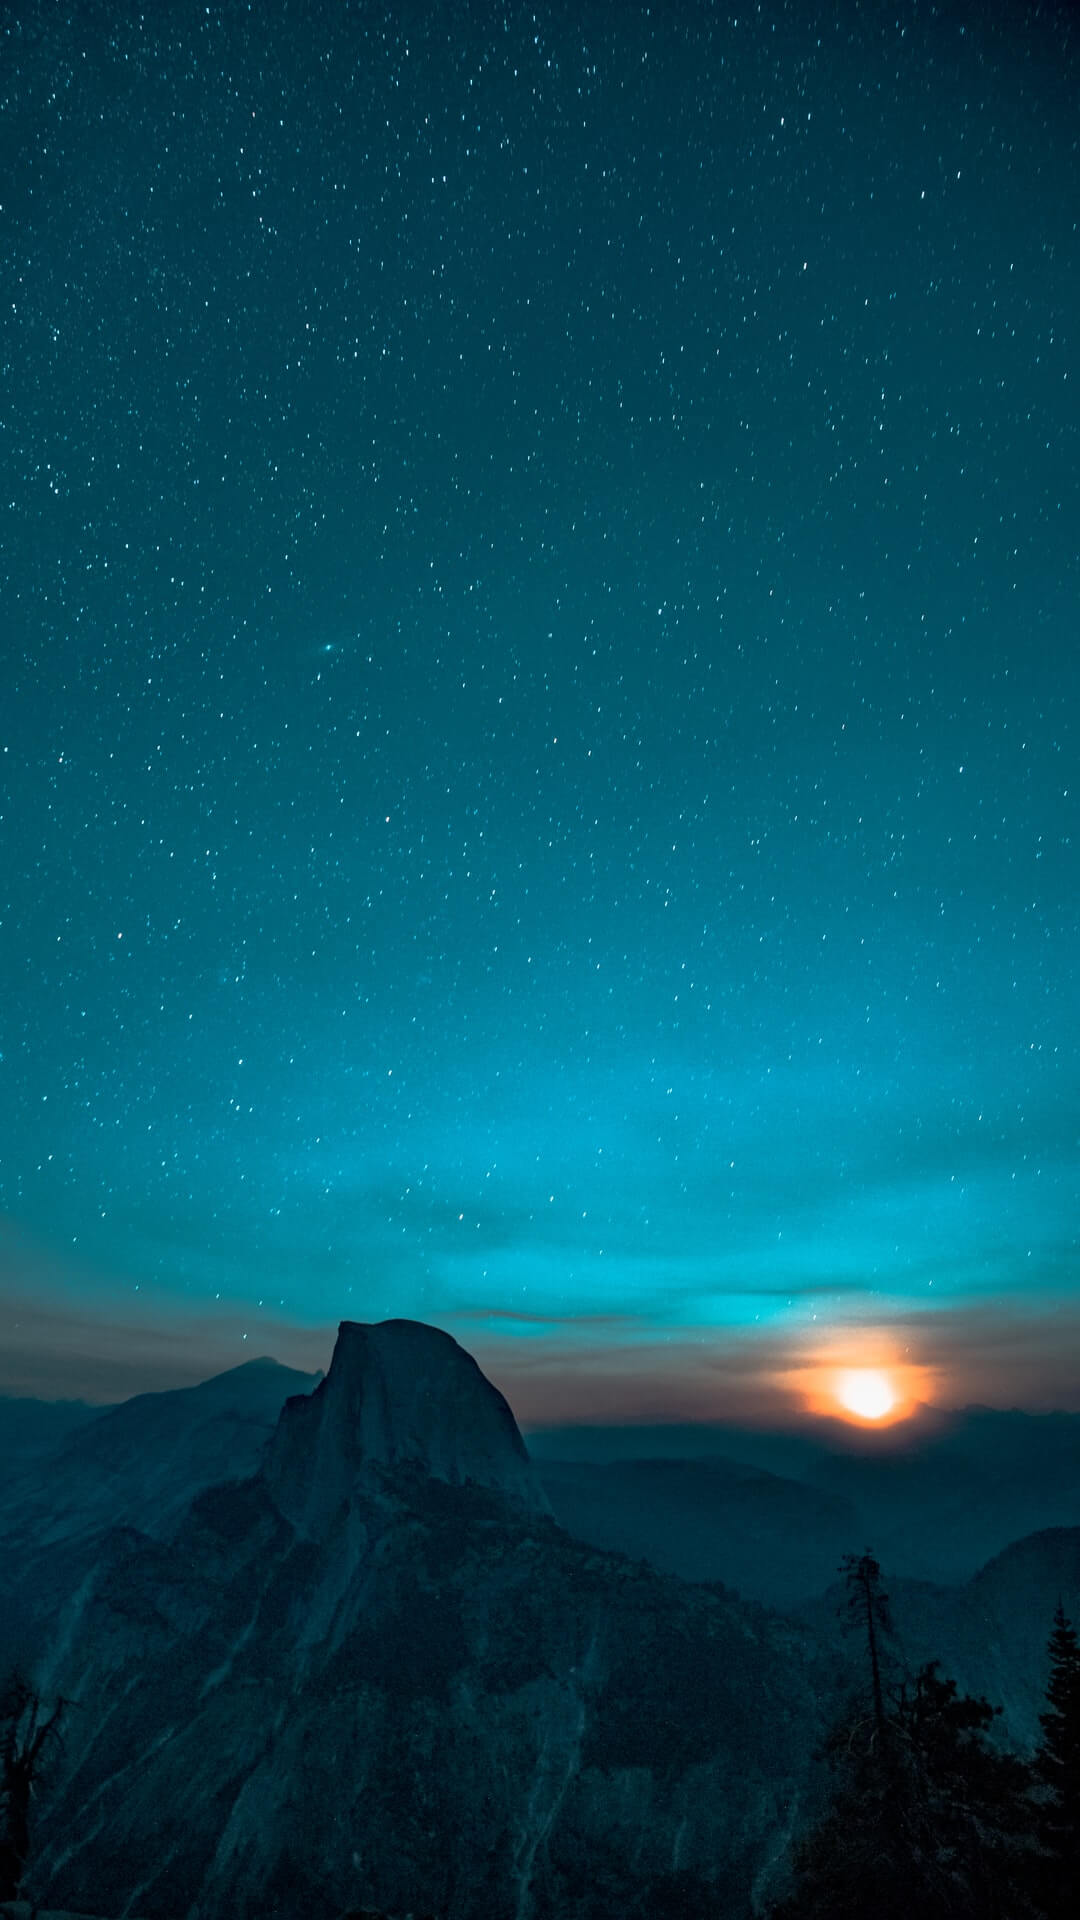 wallpaper for phone android